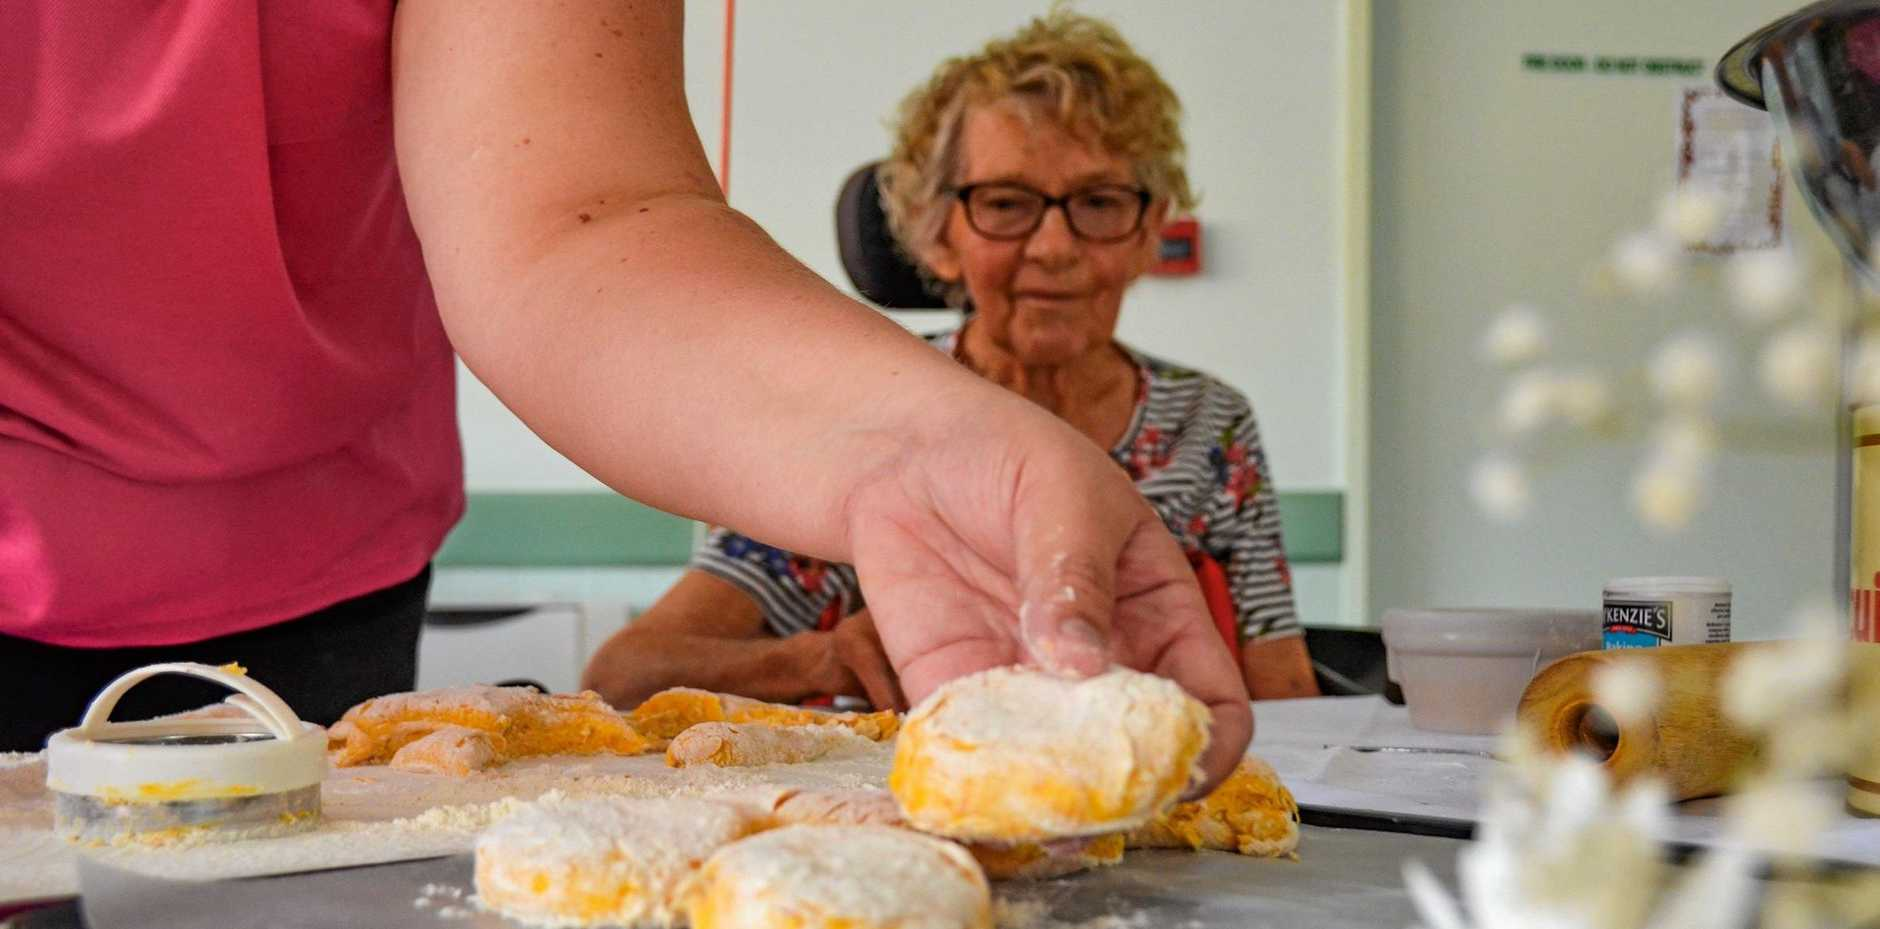 PUMPKIN PASTIME: Elsie Vicary relives a favourite pastime as she bakes pumpkin scones.